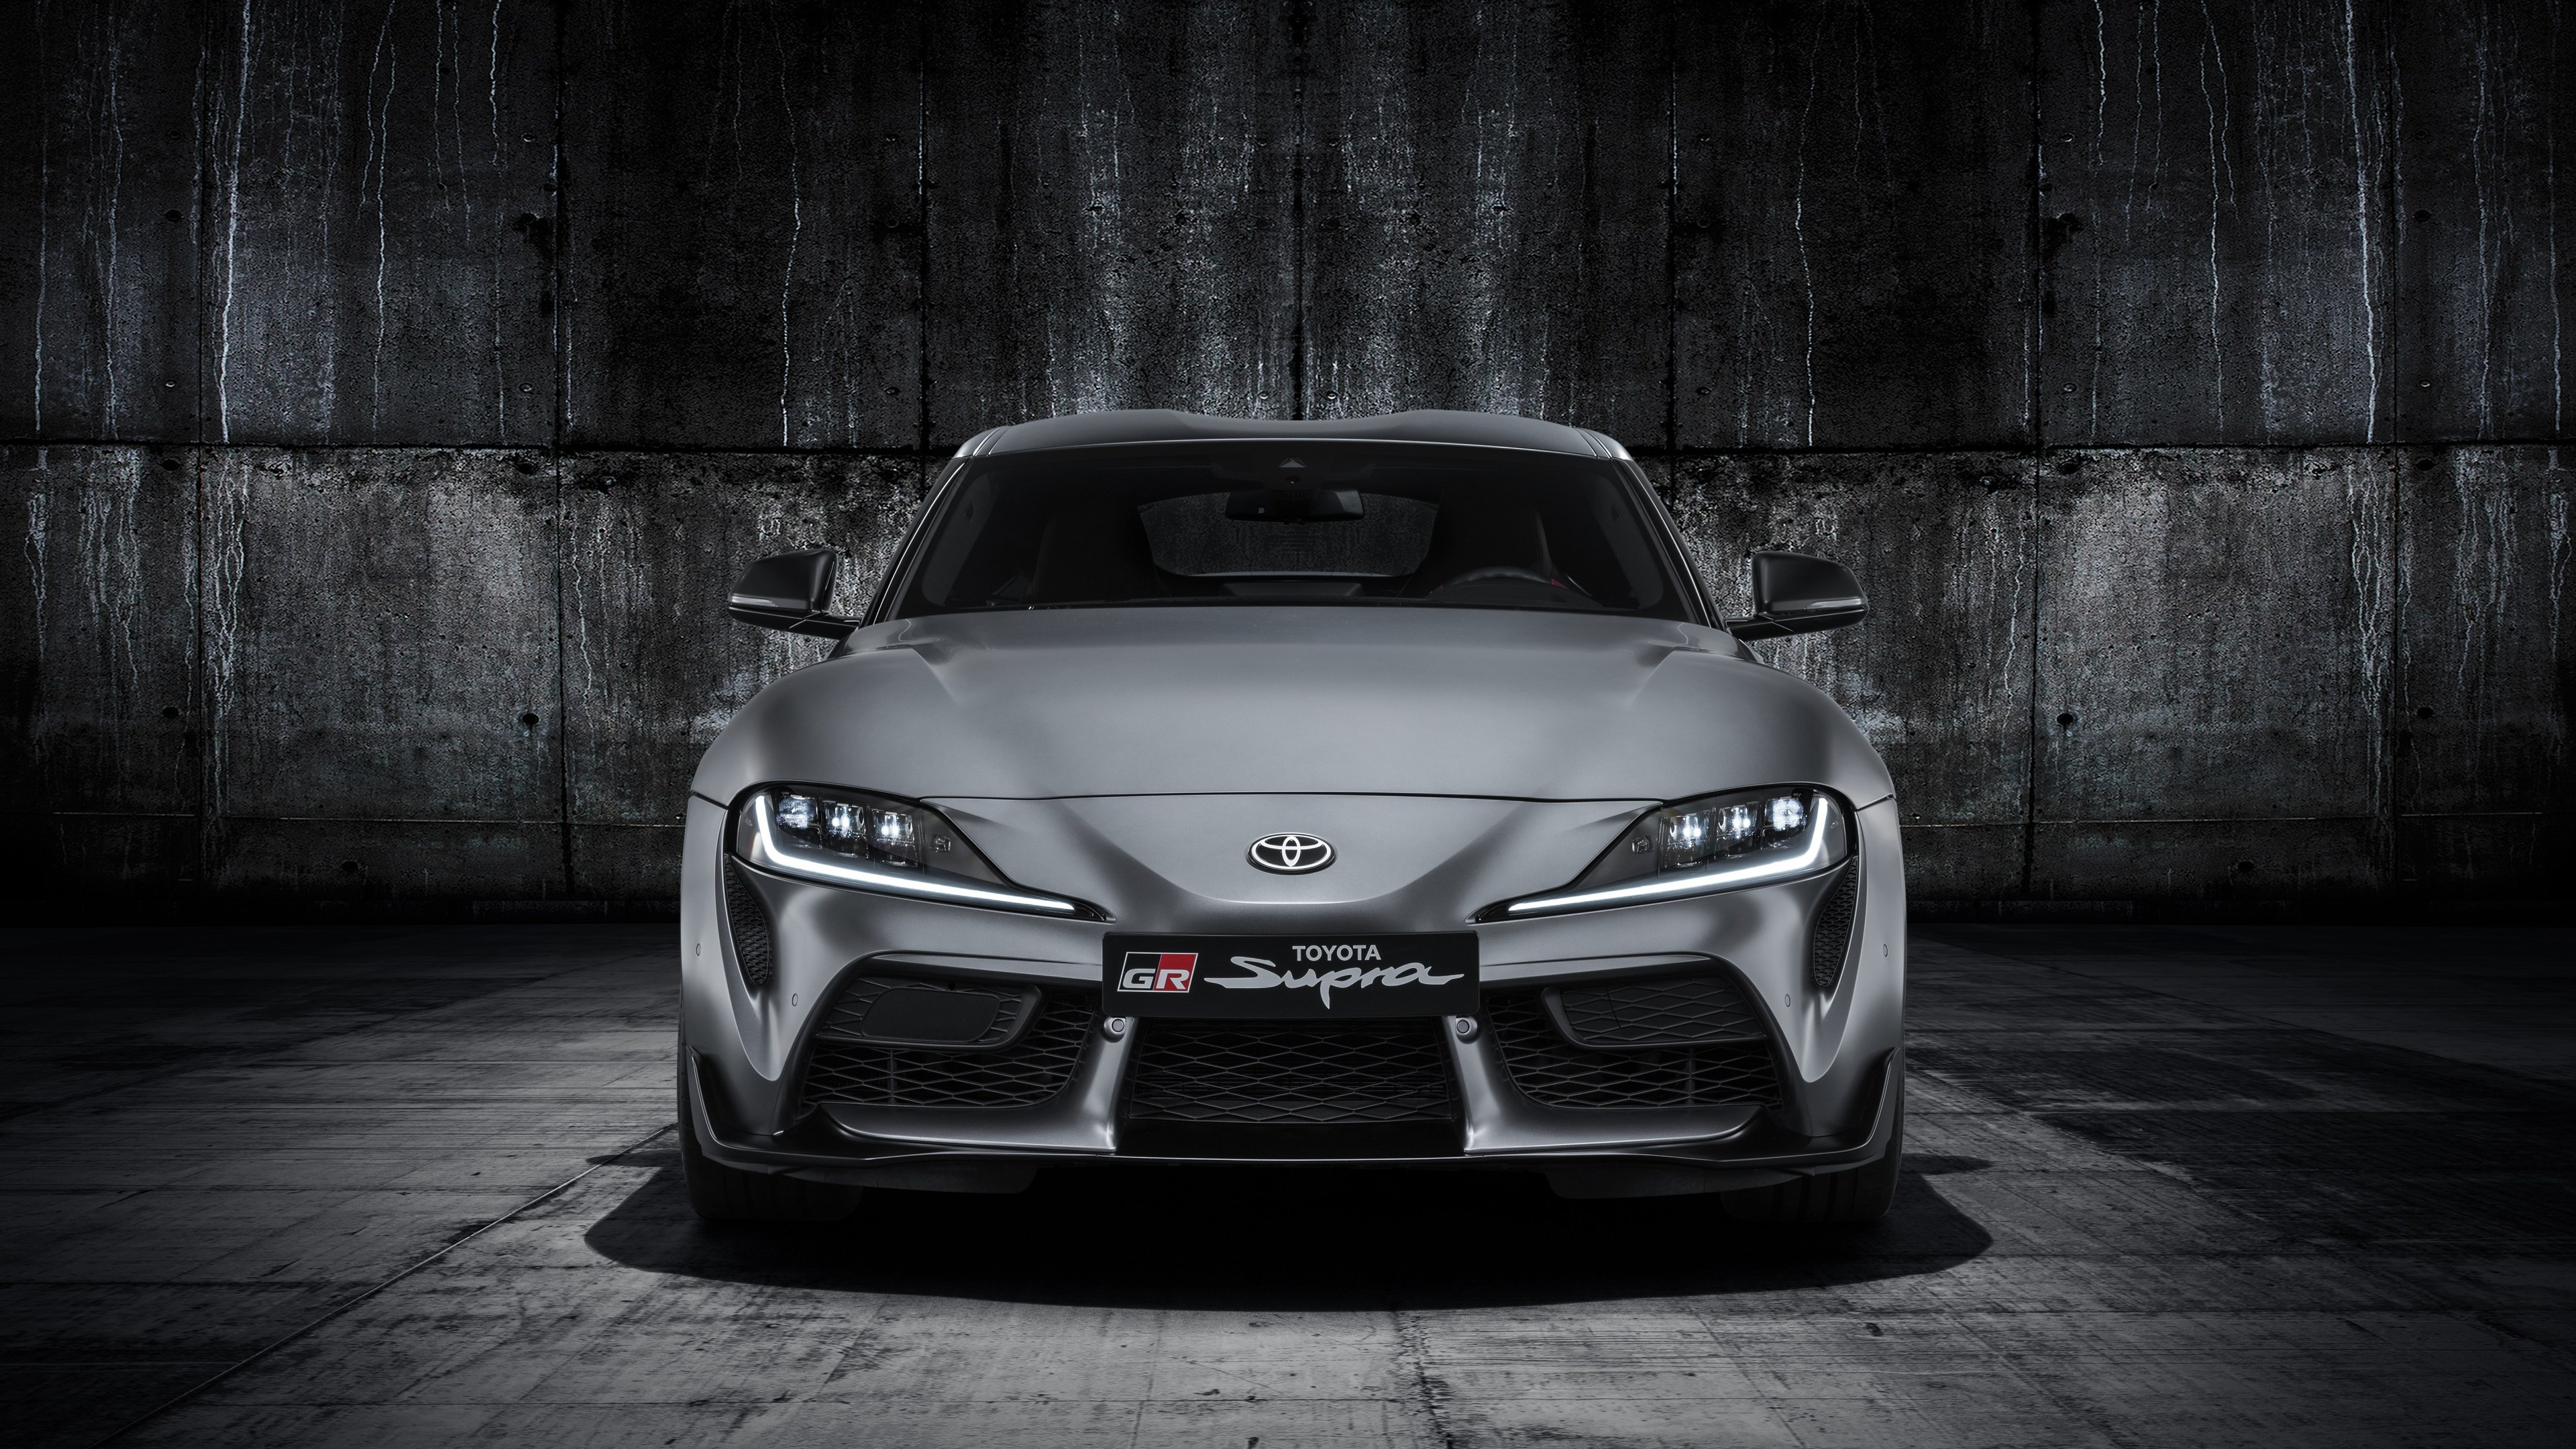 toyota supra grey studio 4k 1557260955 - Toyota Supra Grey Studio 4k - toyota wallpapers, toyota supra wallpapers, hd-wallpapers, cars wallpapers, 5k wallpapers, 4k-wallpapers, 2019 cars wallpapers